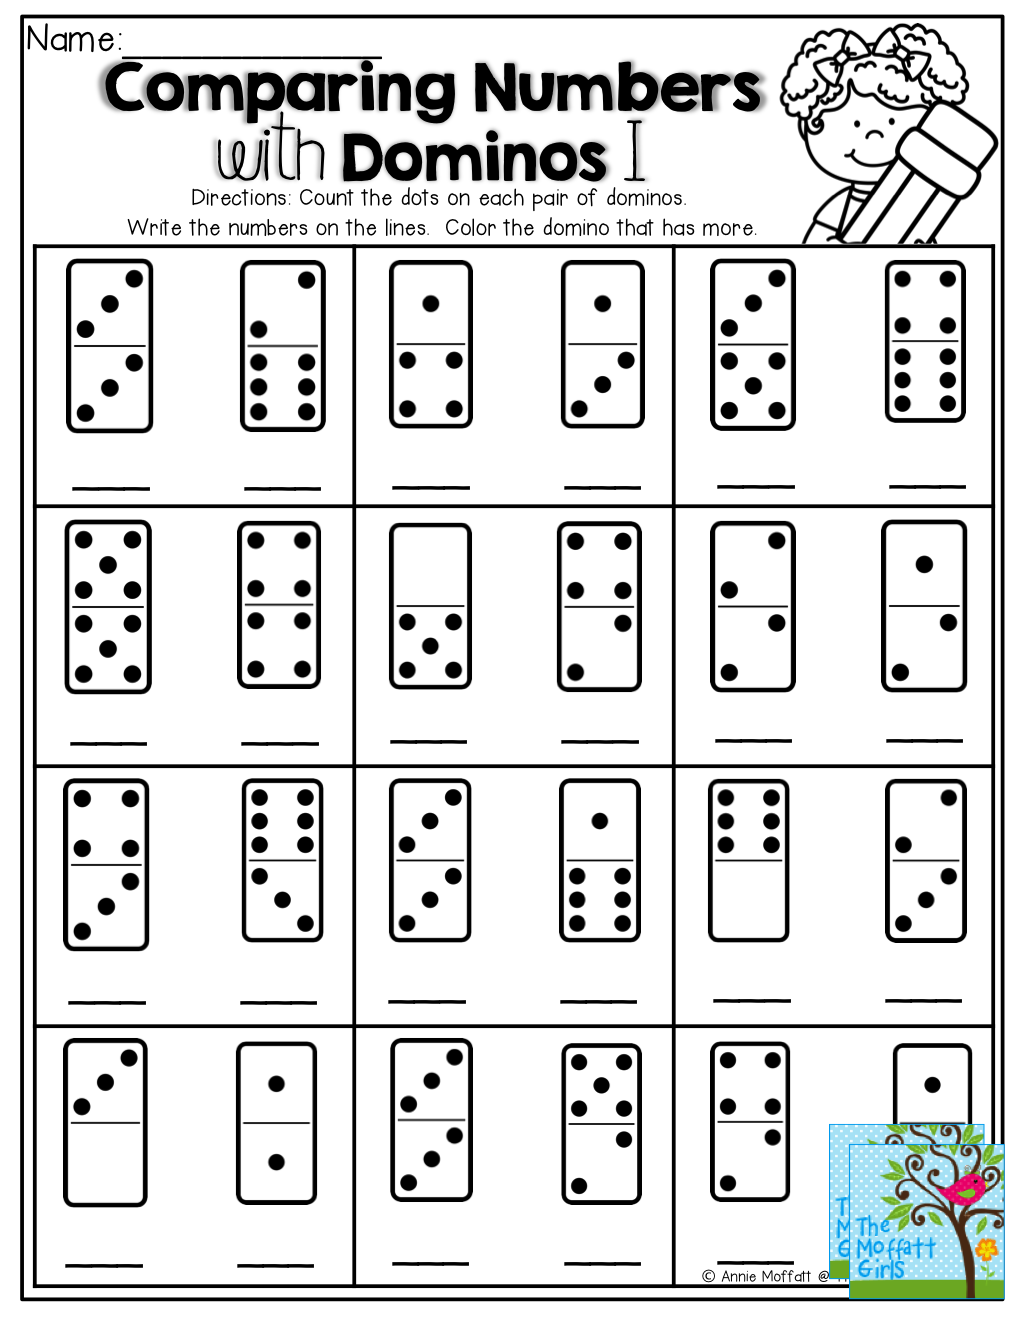 medium resolution of Comparing Numbers! Count the dots on the domino